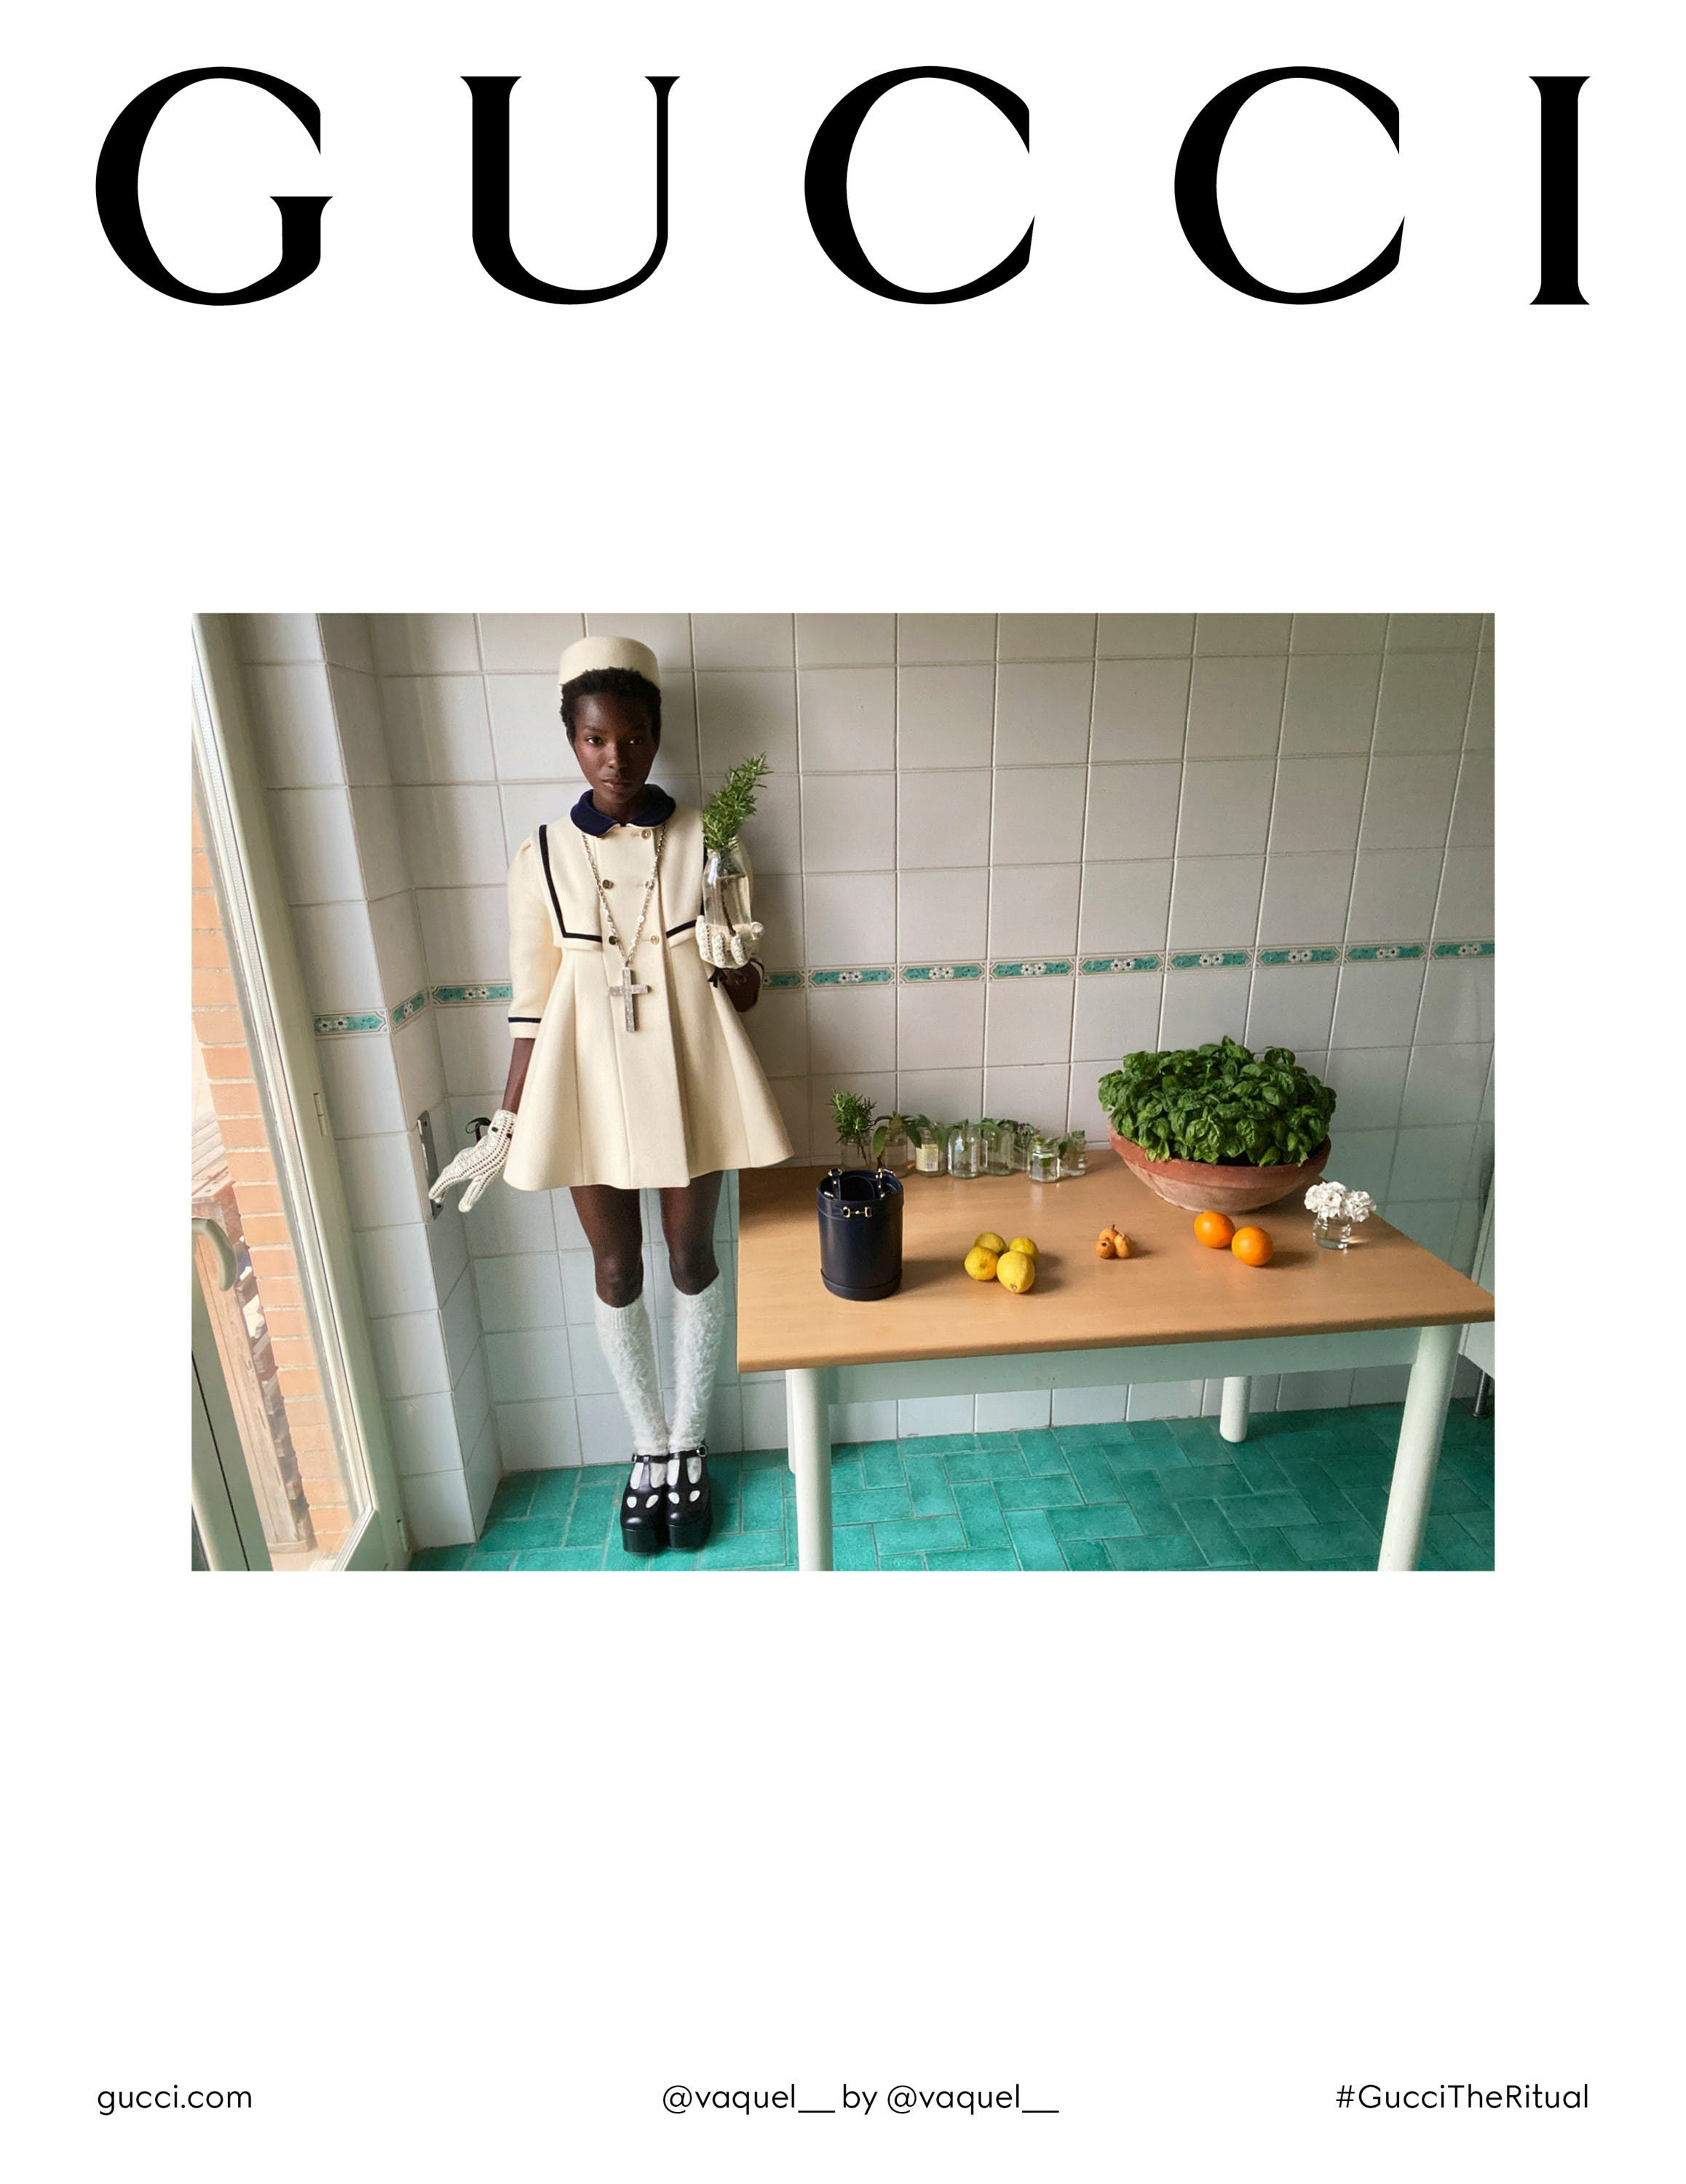 ALESSANDRO MICHELE: GUCCI'S LAST CAMPAIGN AND CREATIVITY